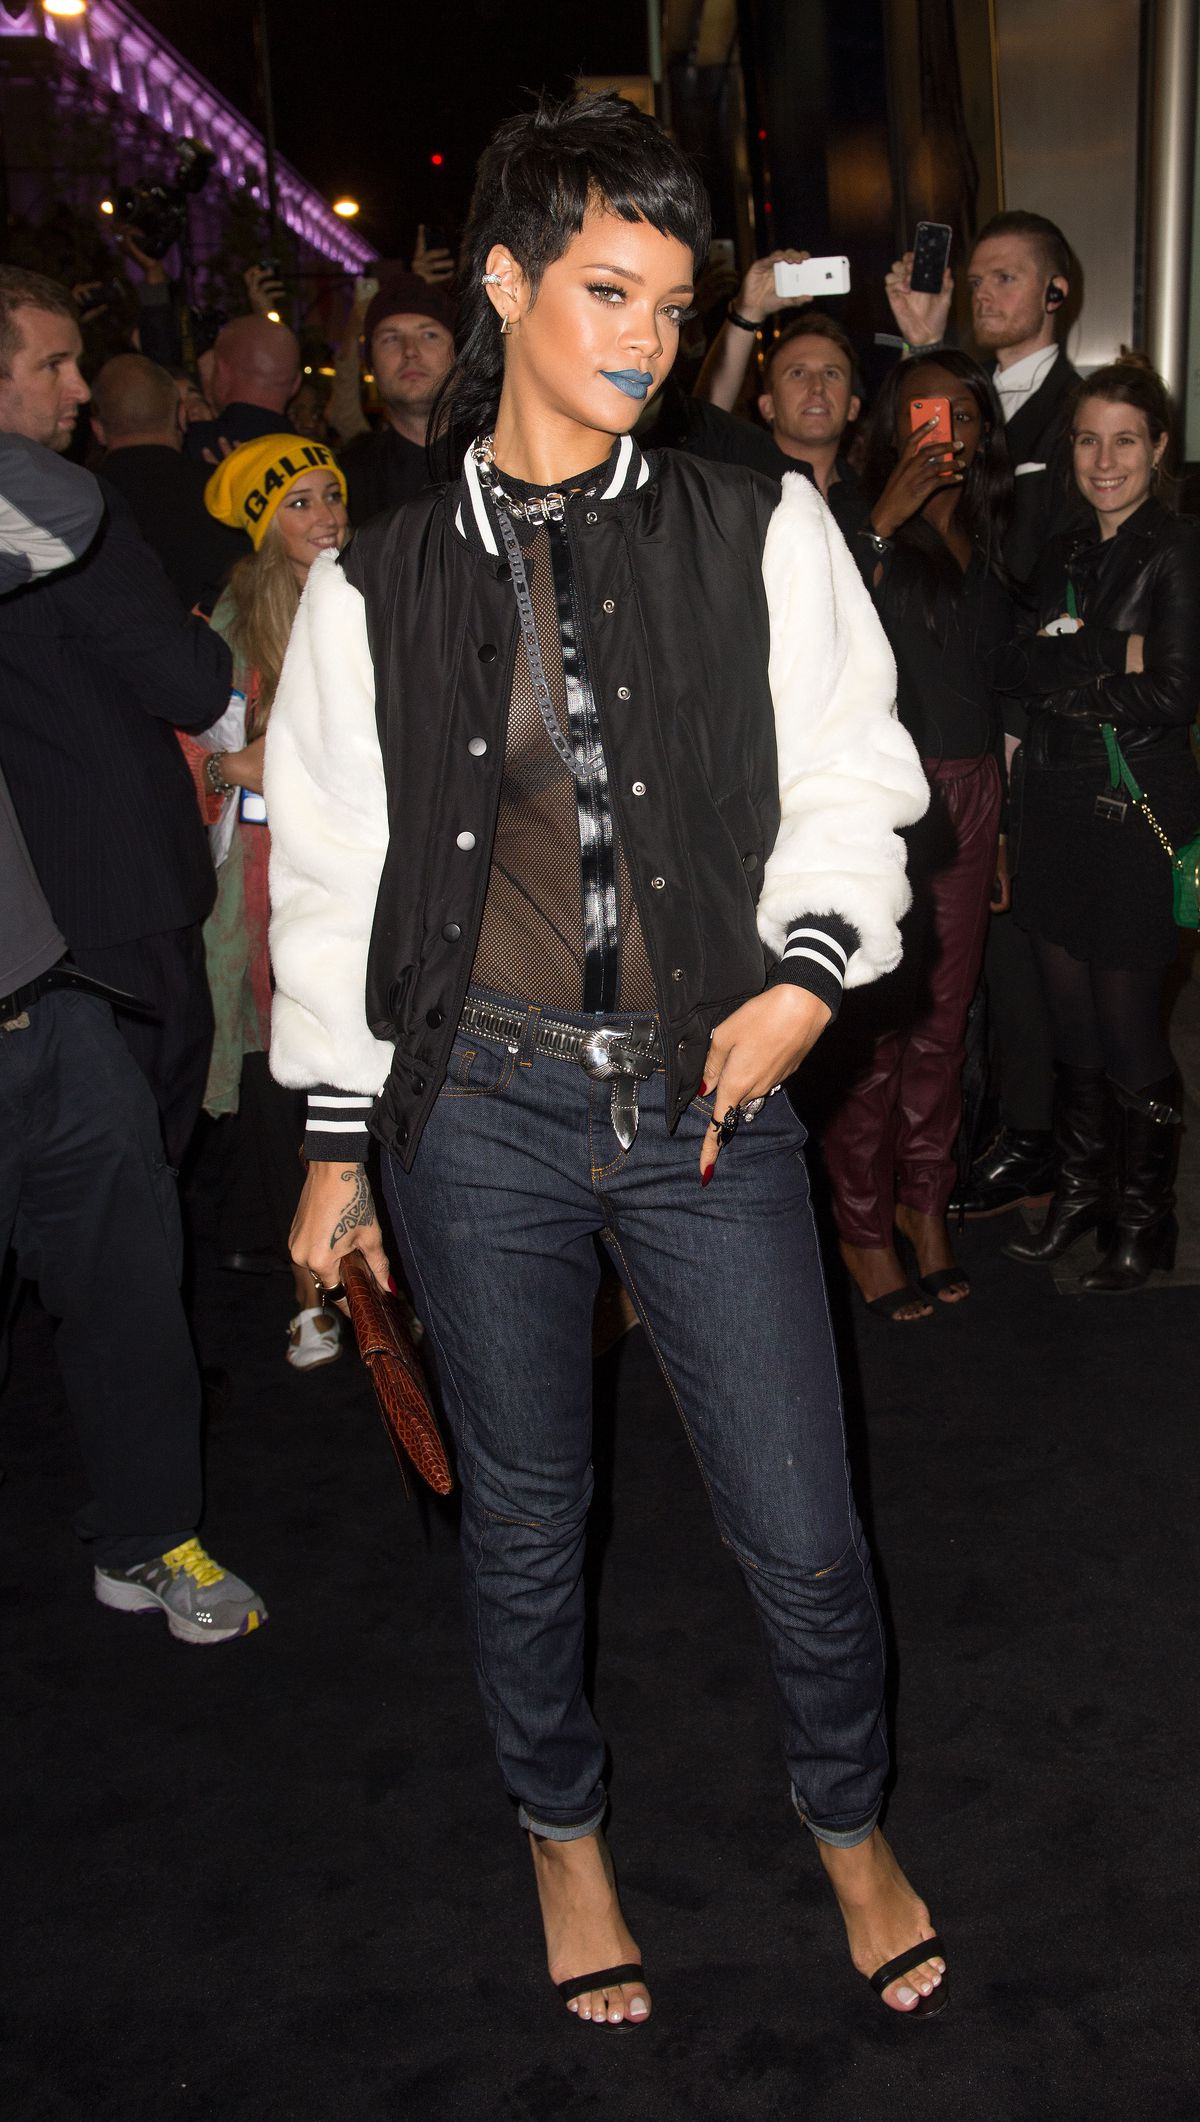 Rihanna at her River Island launch in London in 2013.